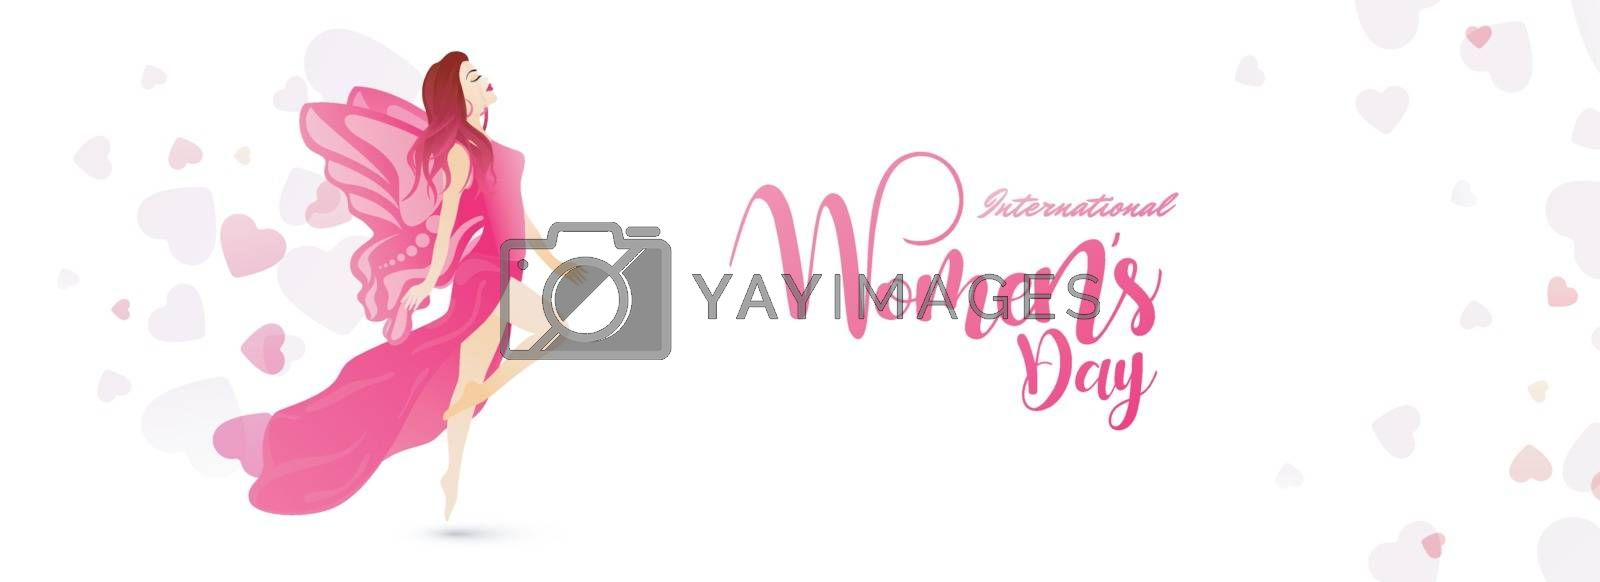 Young girl character with stylish lettering of International Women's Day on heart decorated background.